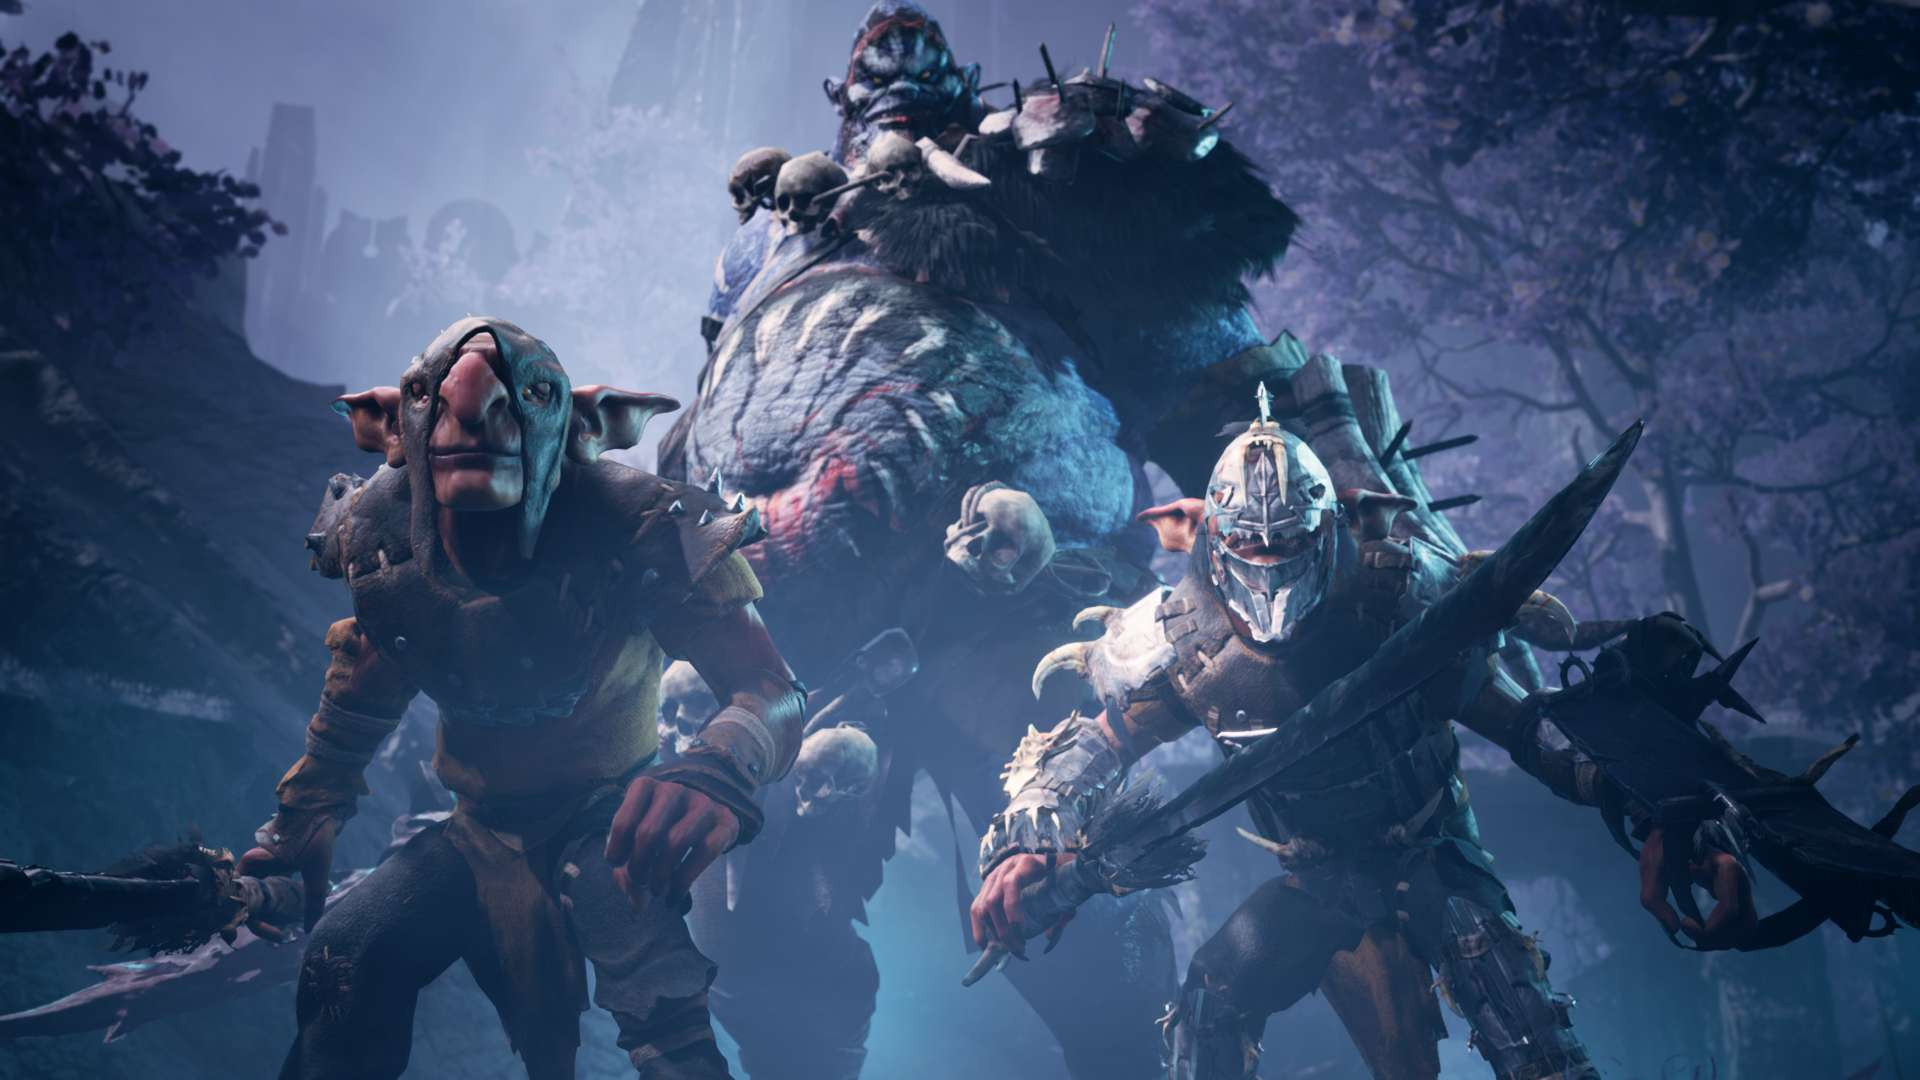 Dungeons Dragons Dark Alliance Armies of Darkness - Anunciado Dungeons & Dragons: Dark Alliance para PC y consolas